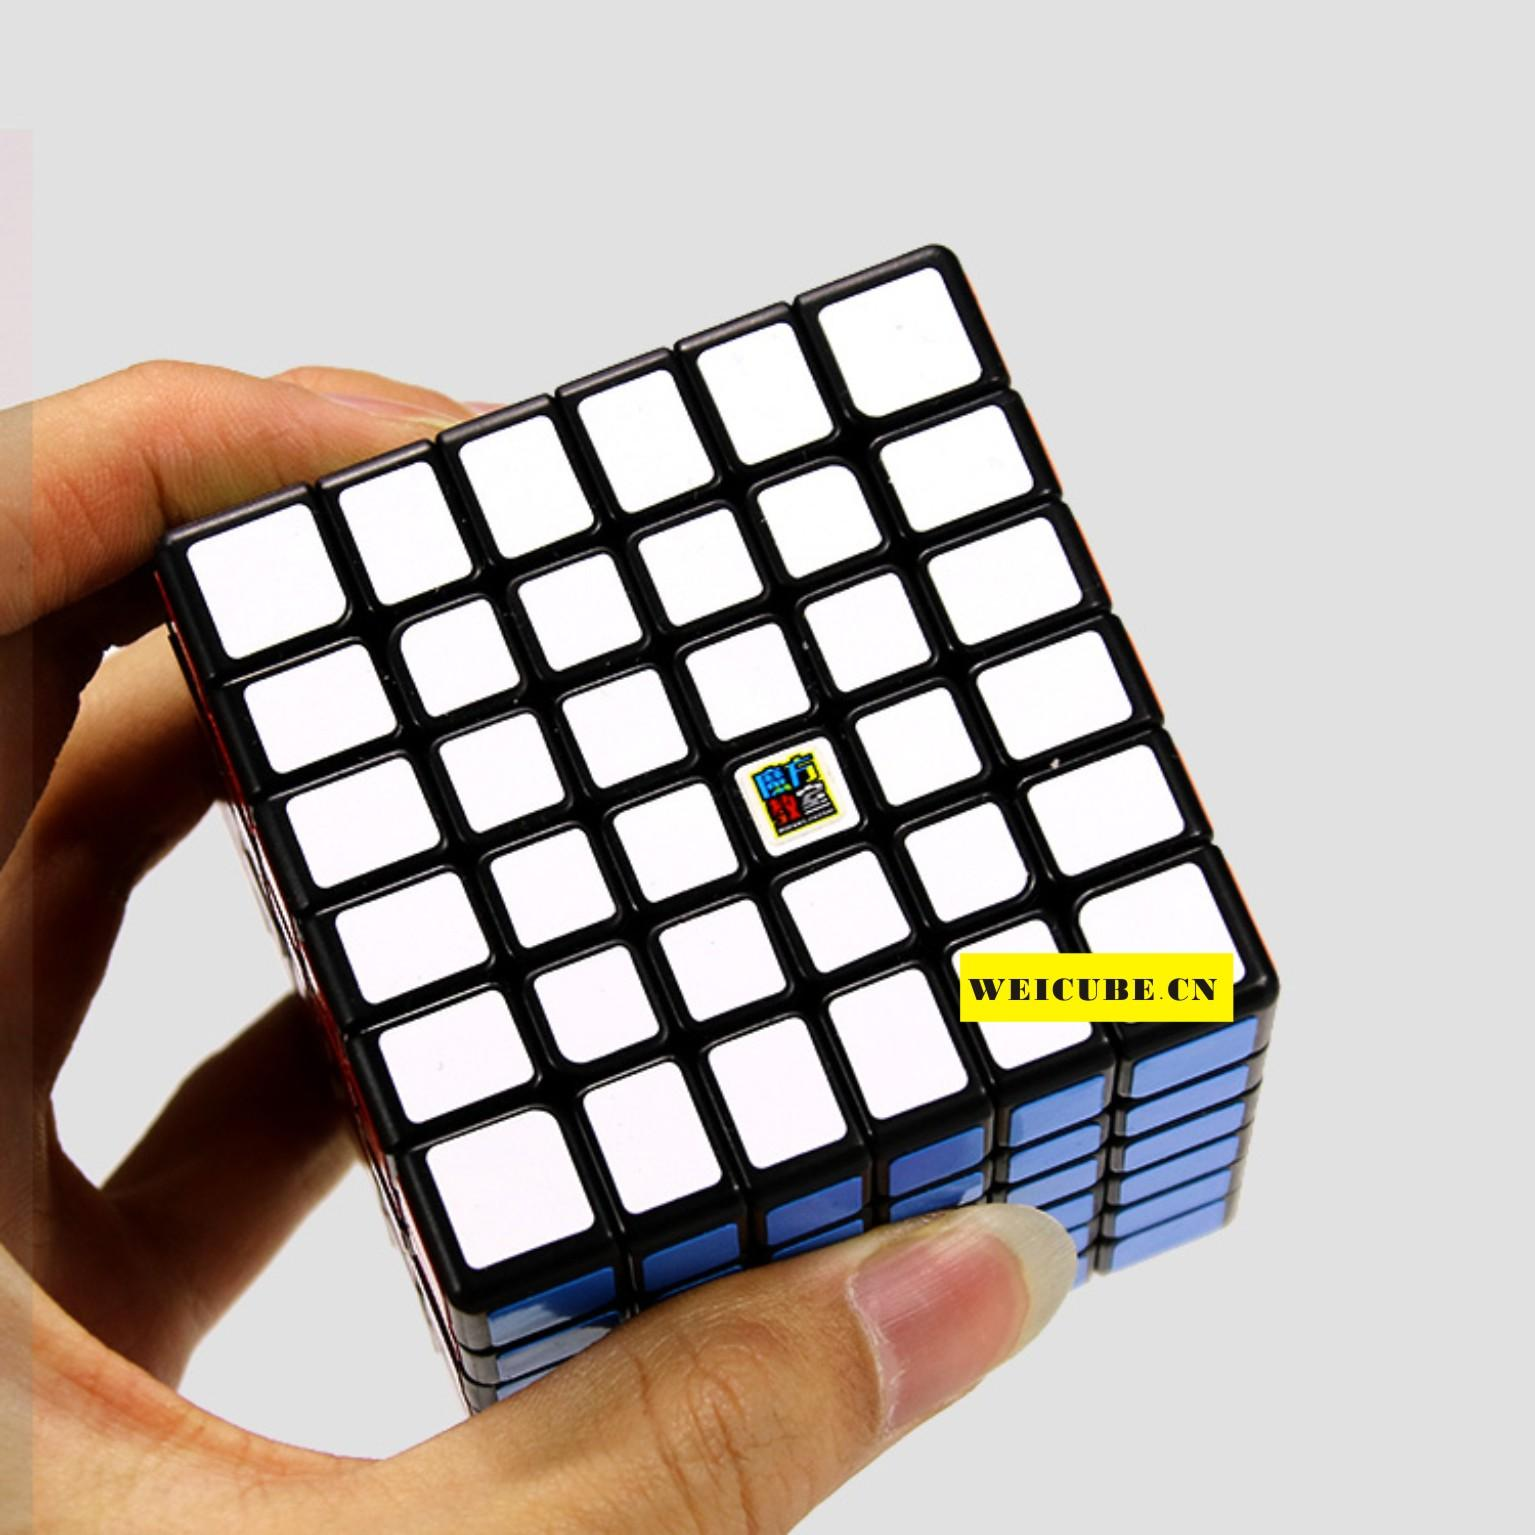 Mfjs Magic Cubes 4x4 5x5 6x6 7x7 Speed Twist Puzzle Pvc Rubik Mofang Jiaoshi Mf4s Stickerless Sticker Cube Toys